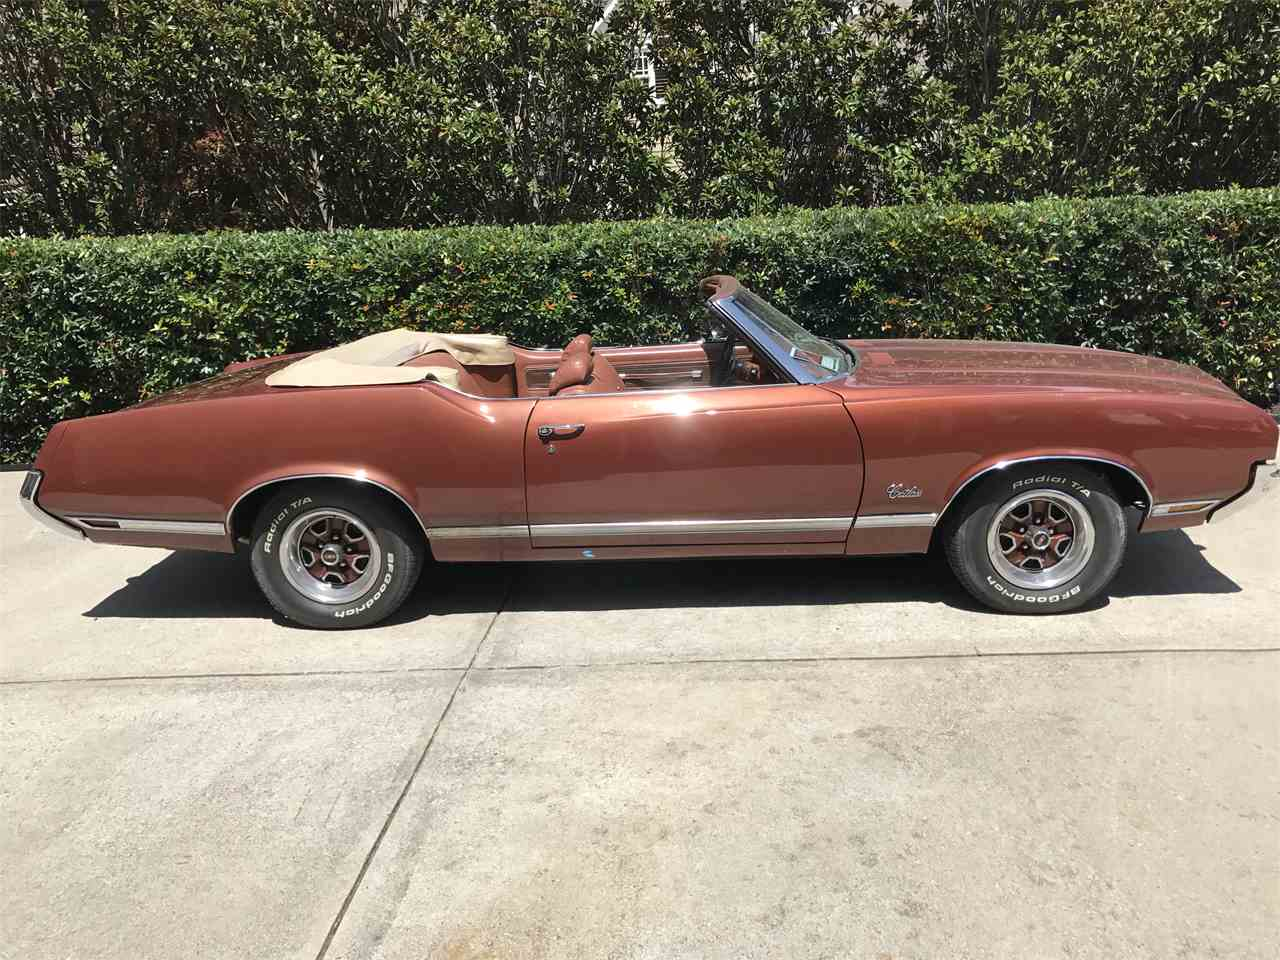 Large Picture of 1971 Cutlass Supreme located in Georgia - $21,500.00 Offered by a Private Seller - JPON